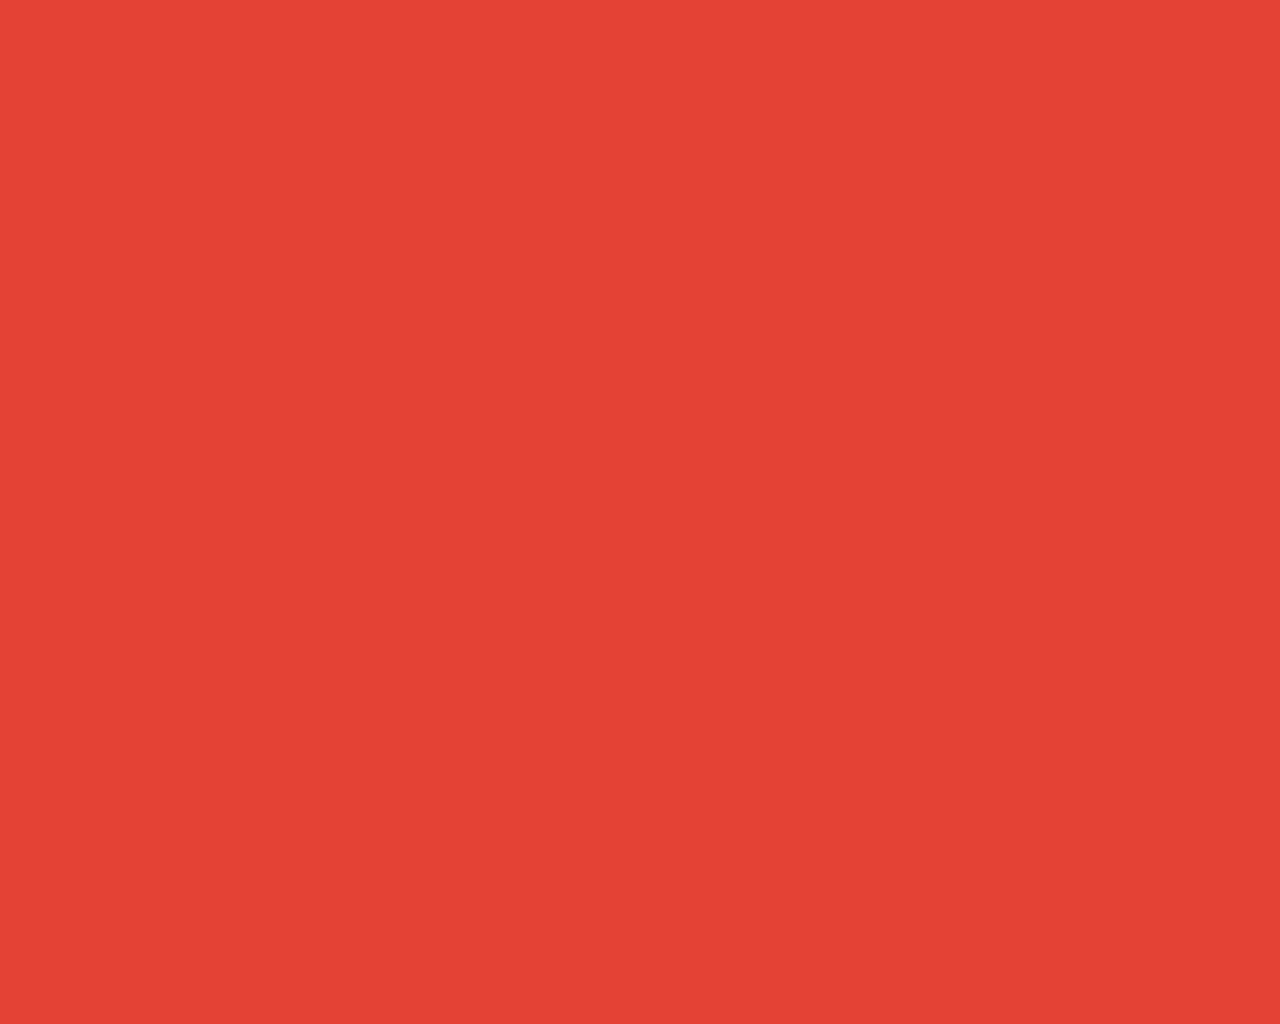 1280x1024 Cinnabar Solid Color Background